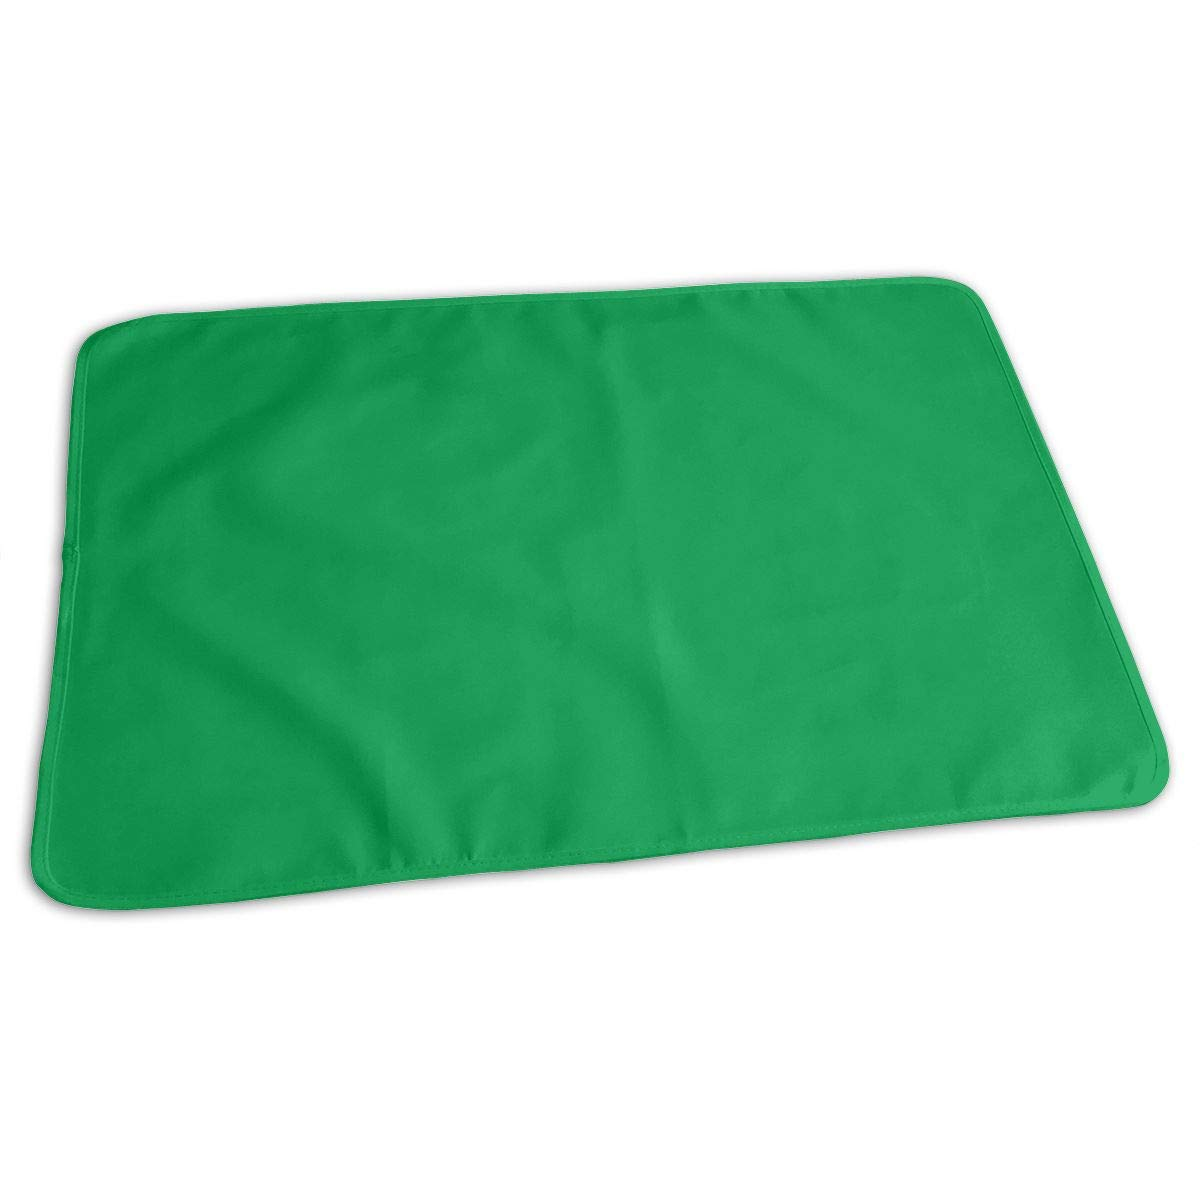 Irish Green Baby Portable Reusable Changing Pad Mat 19.7x27.5 inch